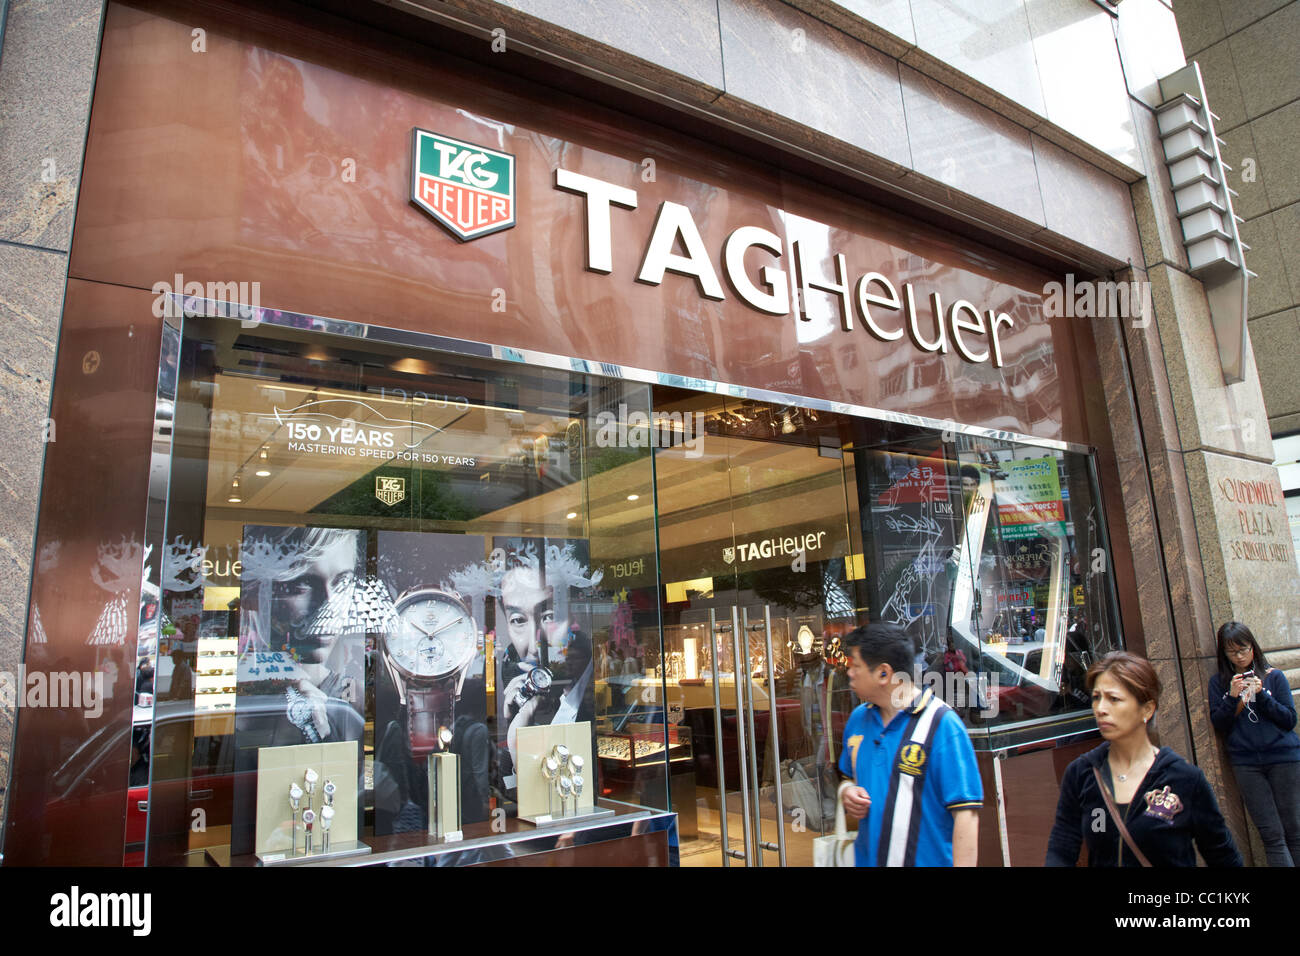 tag heuer watch store in affluent expensive luxury shopping area hong kong hksar china asia - Stock Image